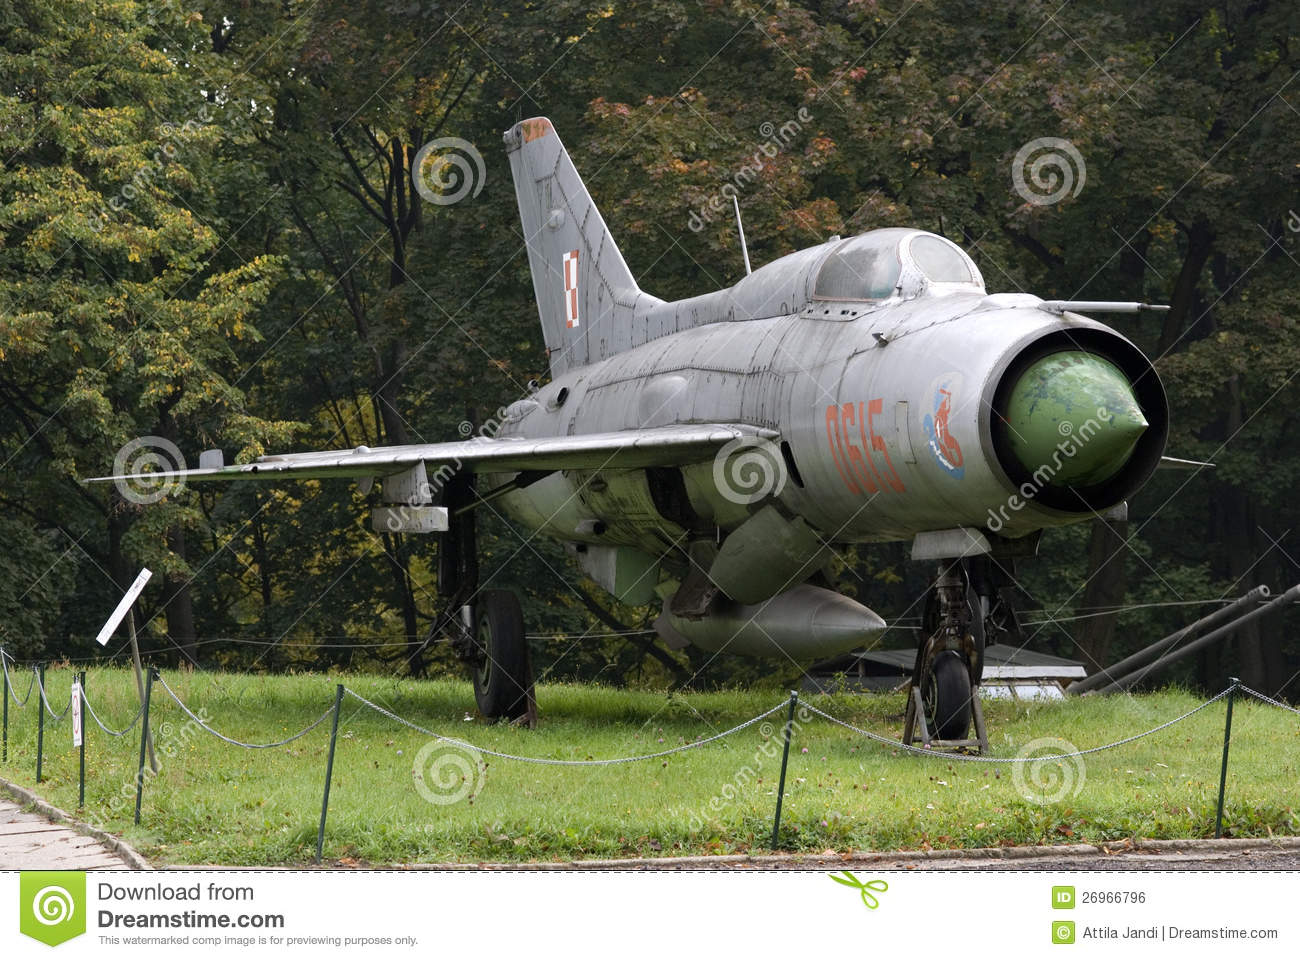 Soviet MiG fighter http://www.dreamstime.com/royalty-free-stock-image-mig-21-soviet-fighter-warszawa-poland-image26966796